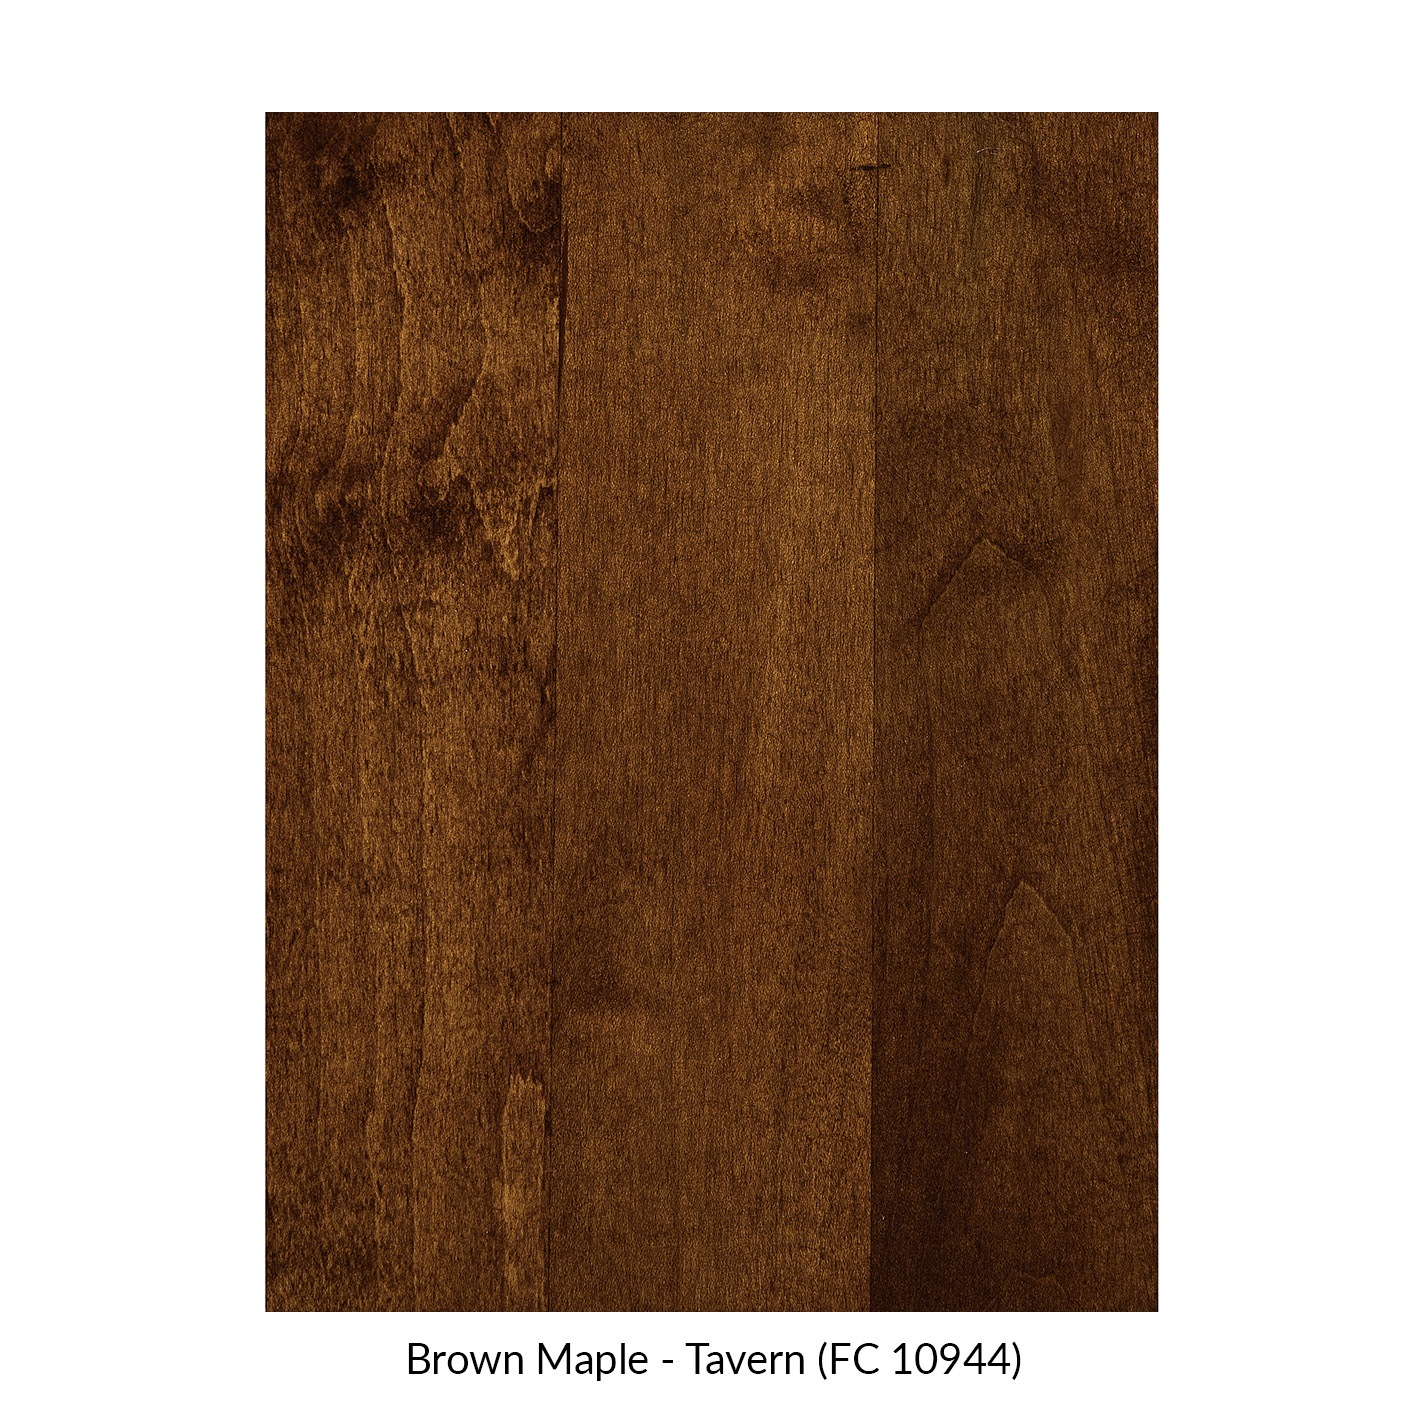 spectrum-brown-maple-tavern-fc-10944.jpg